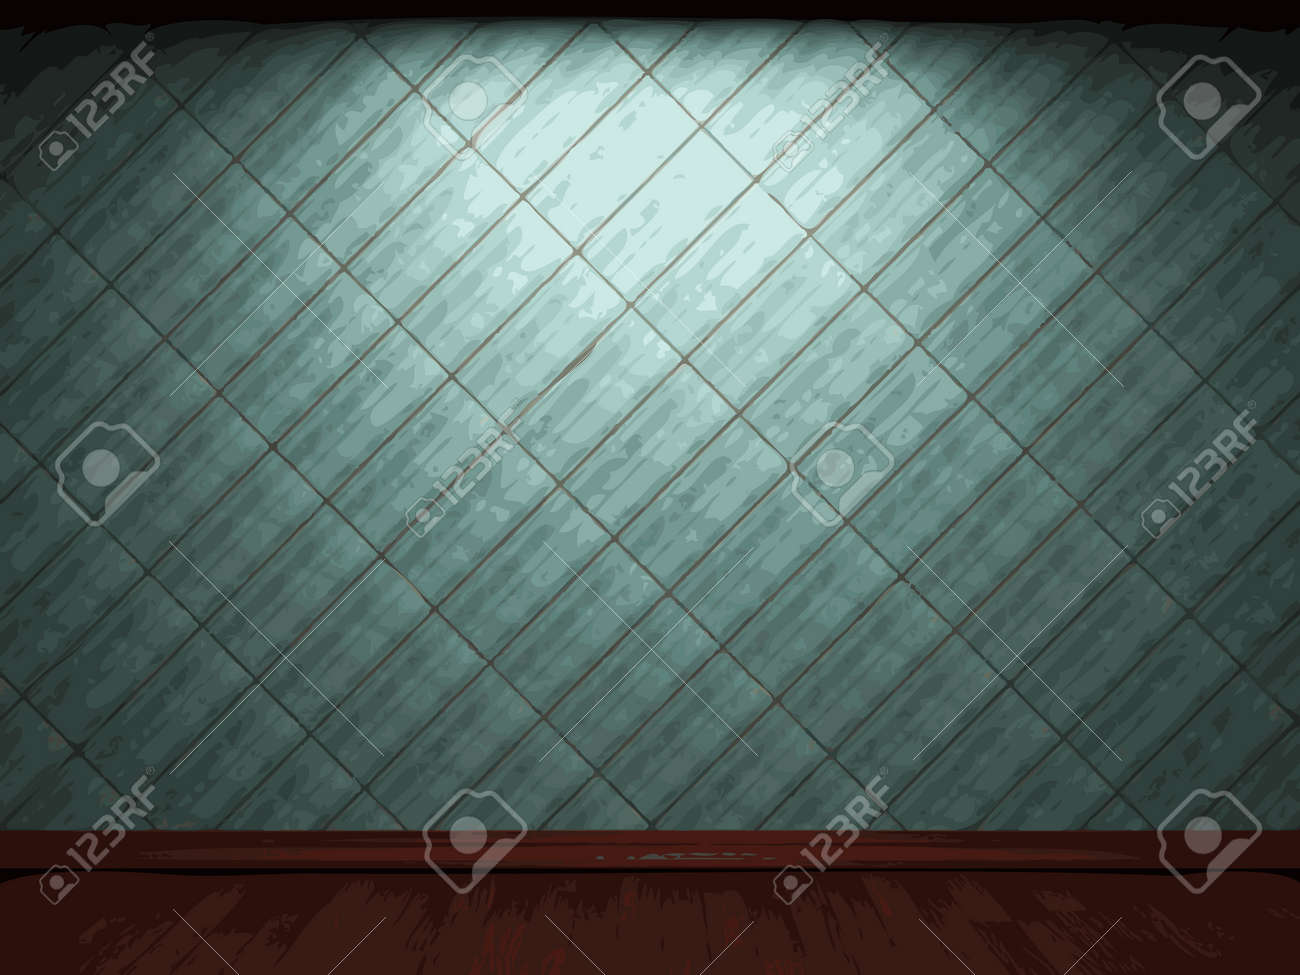 Vector Illuminated Tile Wall Background Royalty Free Cliparts ...